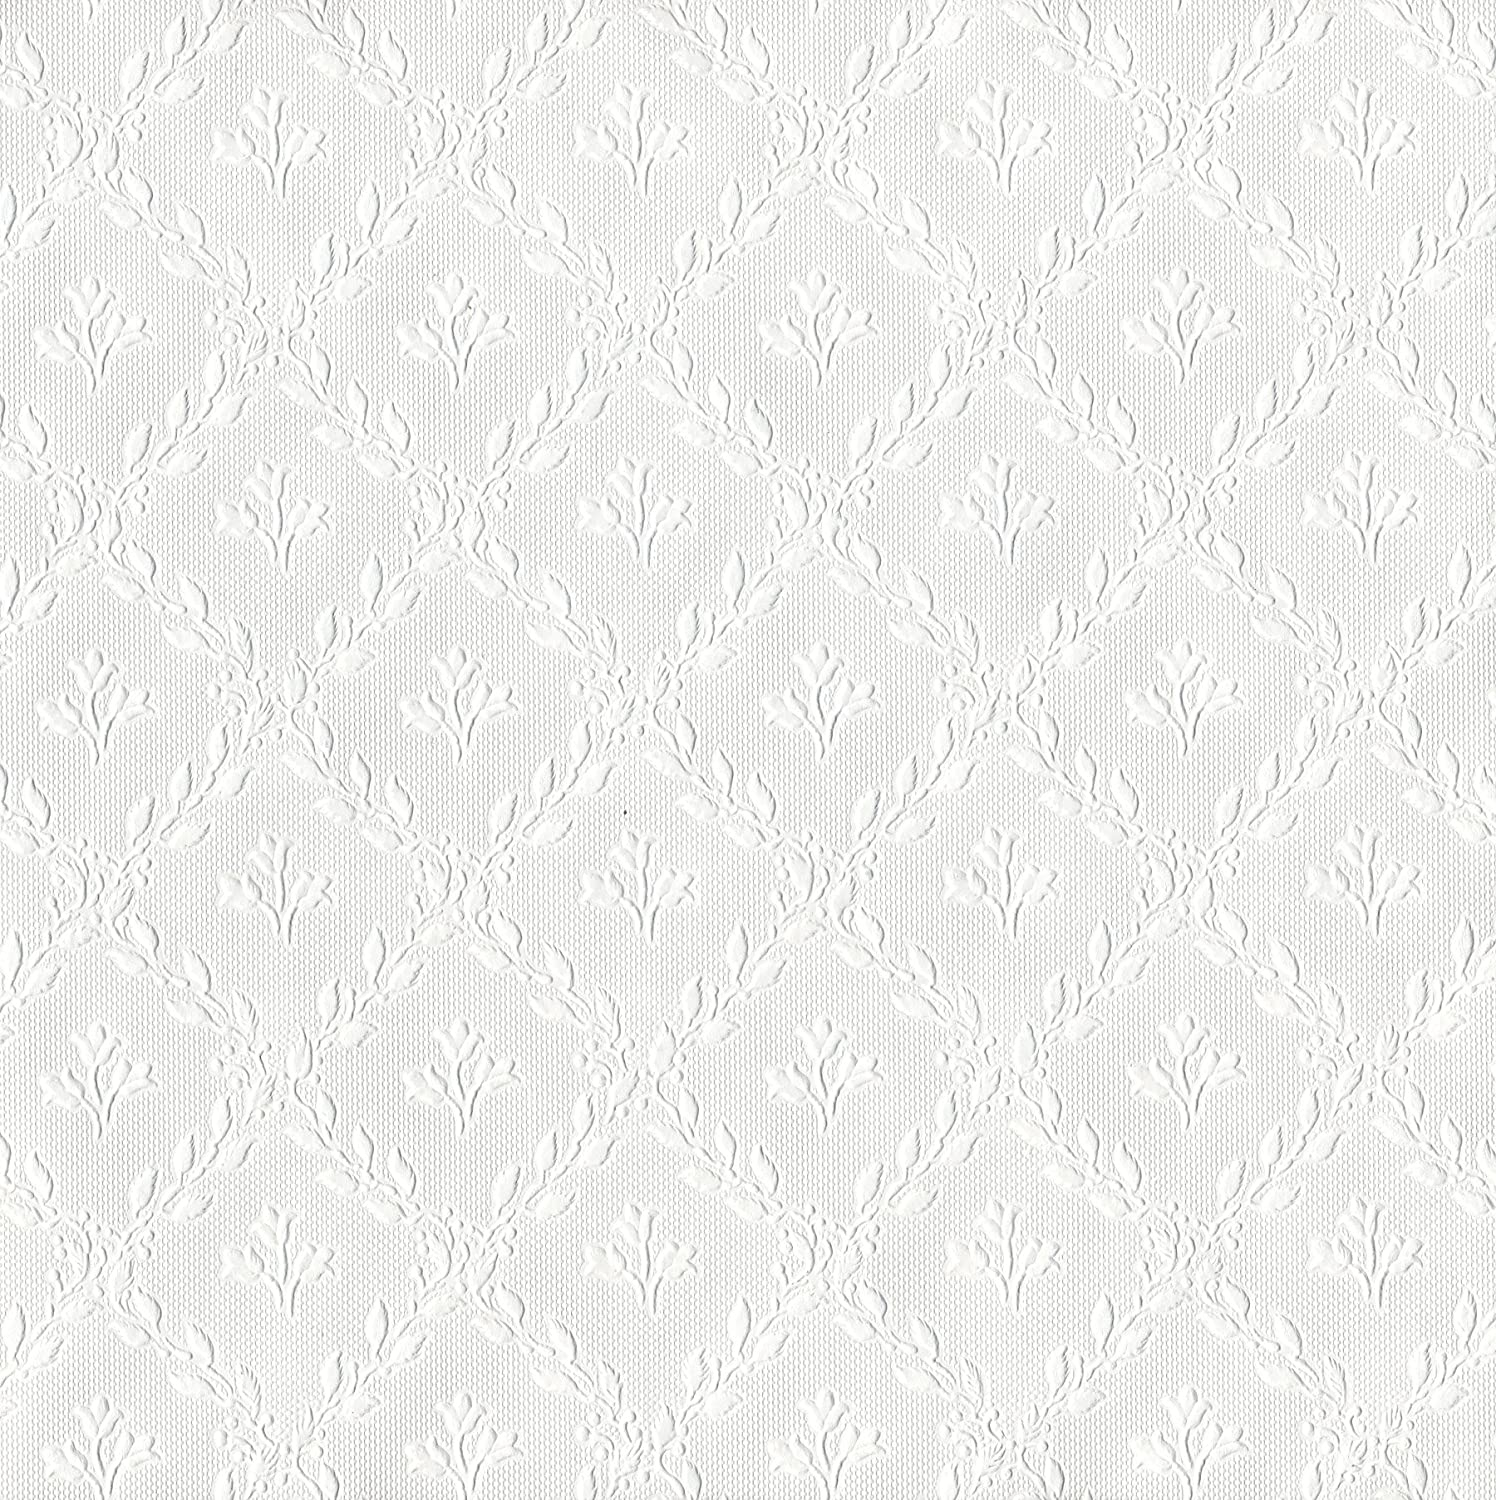 Brewster RD393 Anaglypta Paintable Leaf Trellis with Flower Wallpaper, 21-Inch by 396-Inch, White